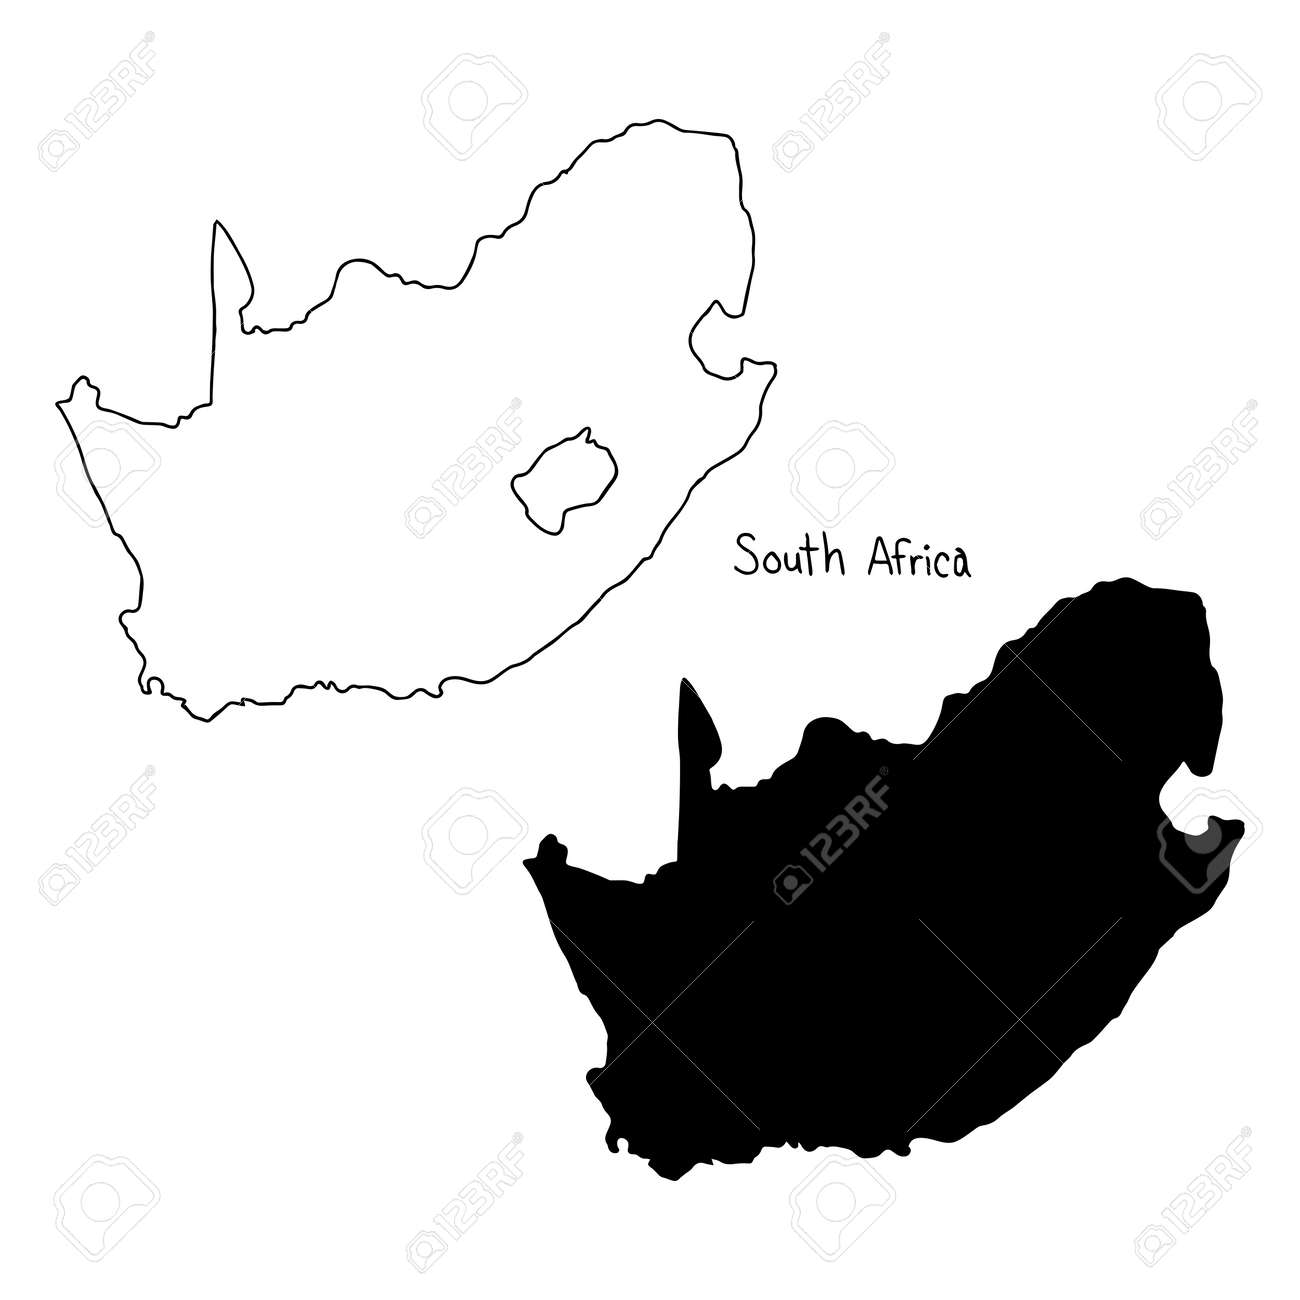 outline and silhouette map of south africa vector illustration hand drawn with black lines